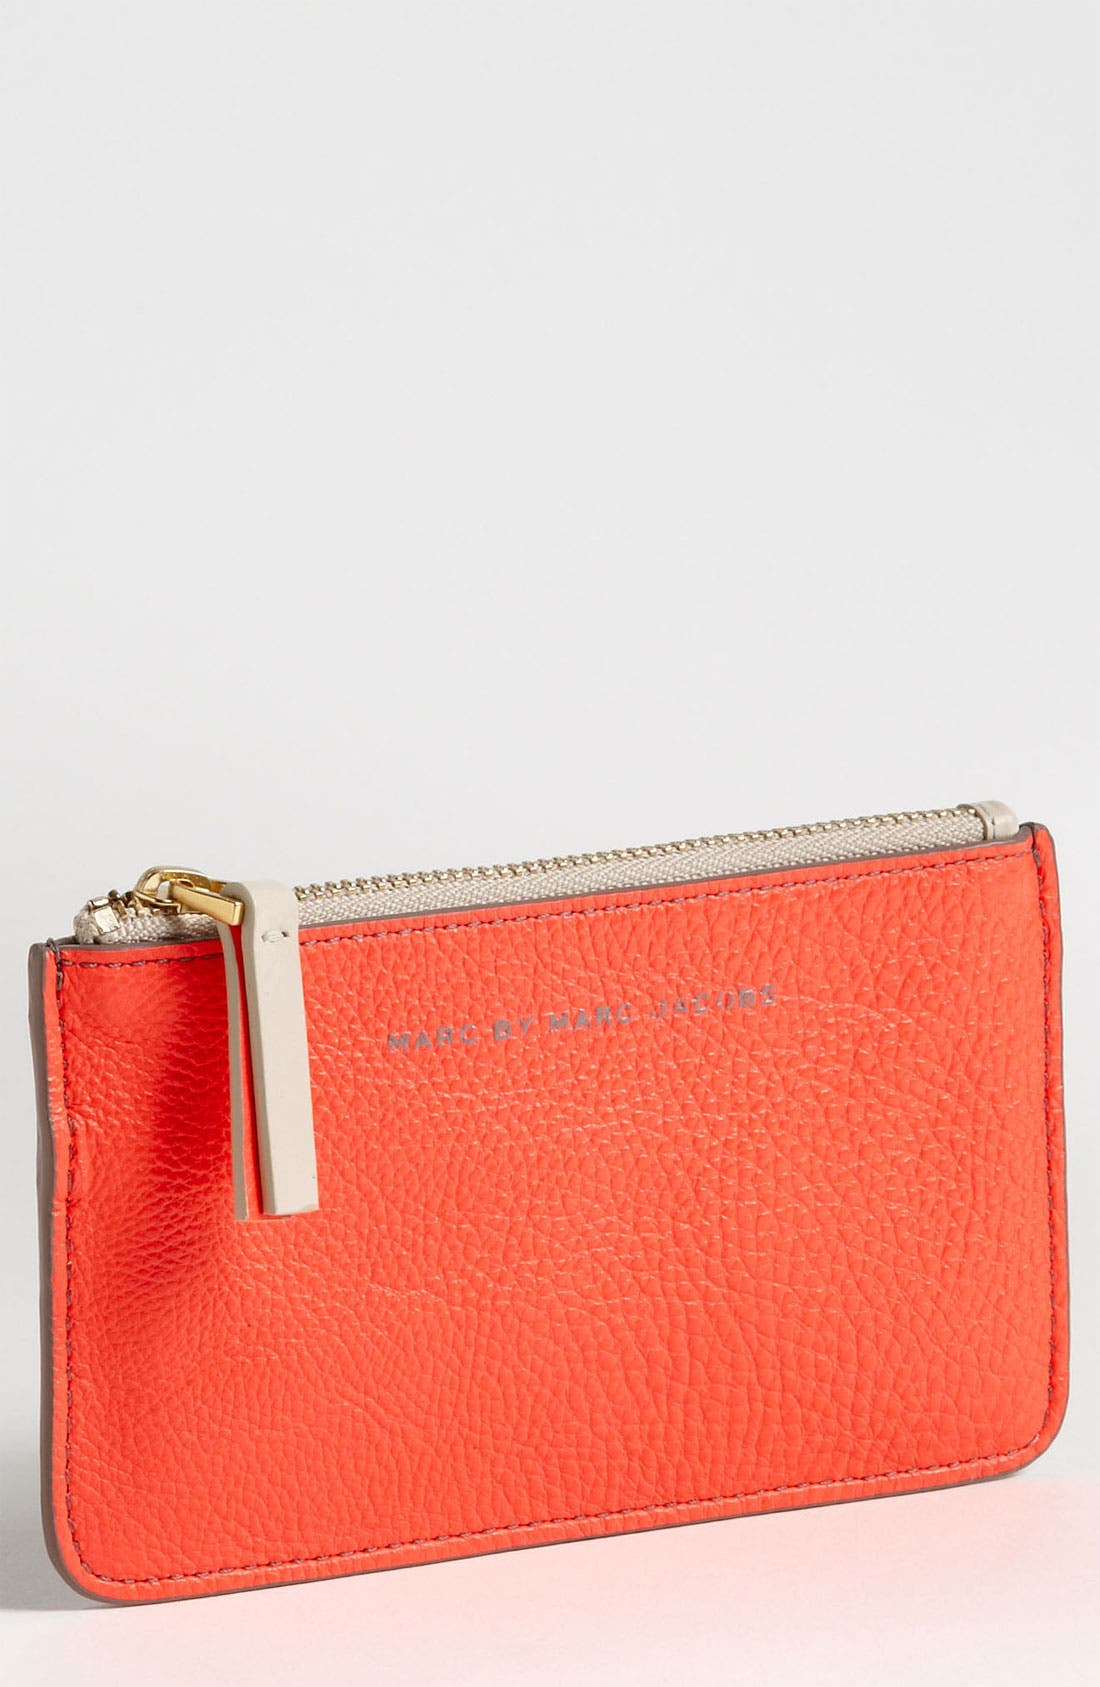 Main Image - MARC BY MARC JACOBS 'Sophisticato' Key Pouch